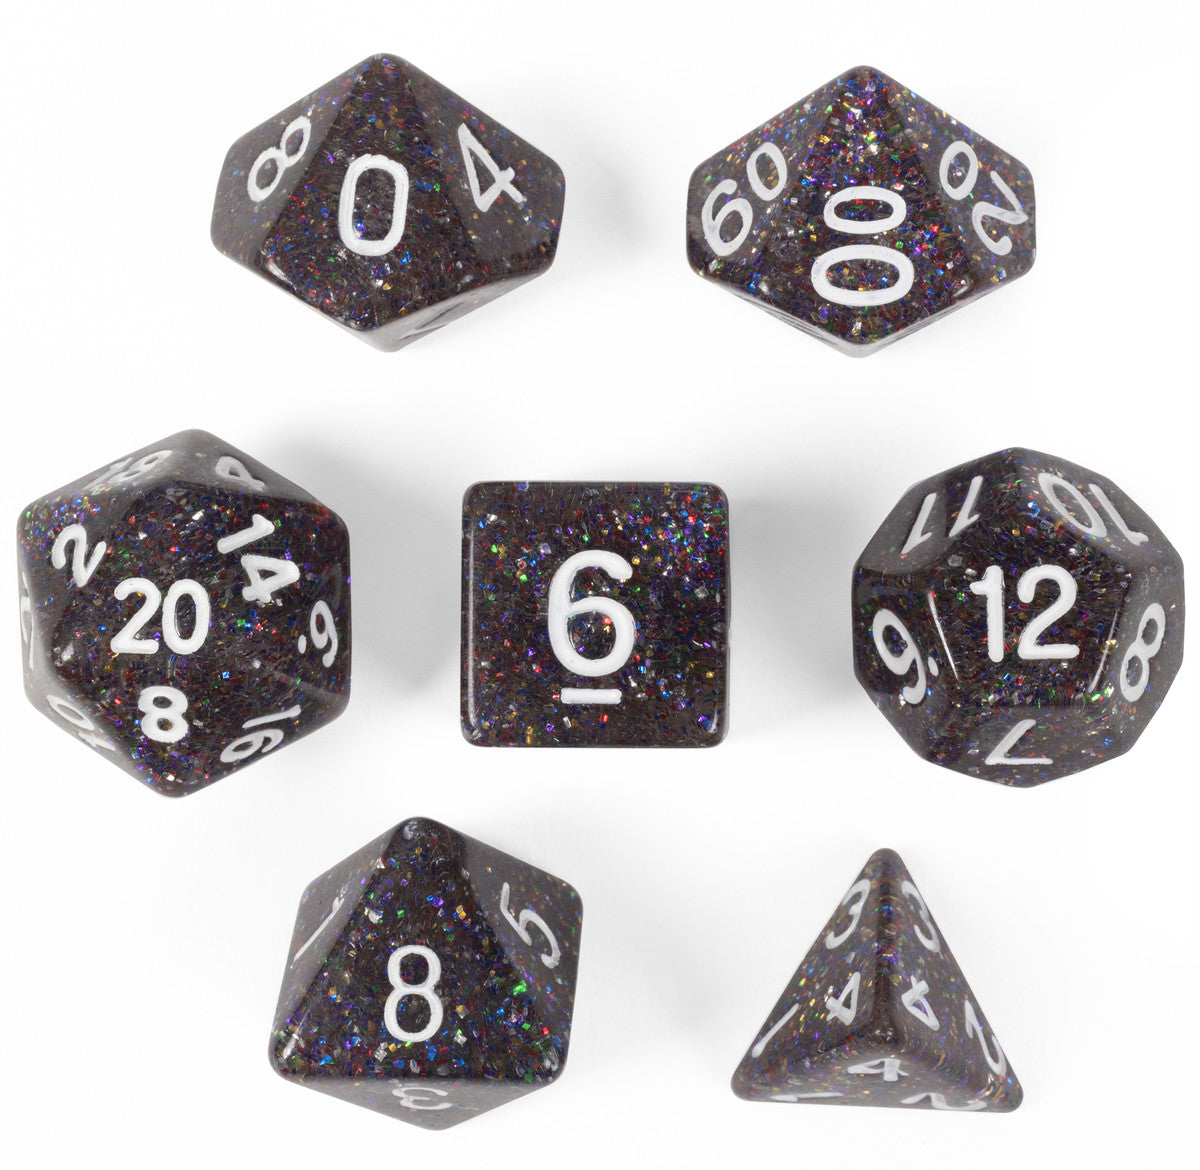 Sparklier Vomit Set of 7 Polyhedral Dice